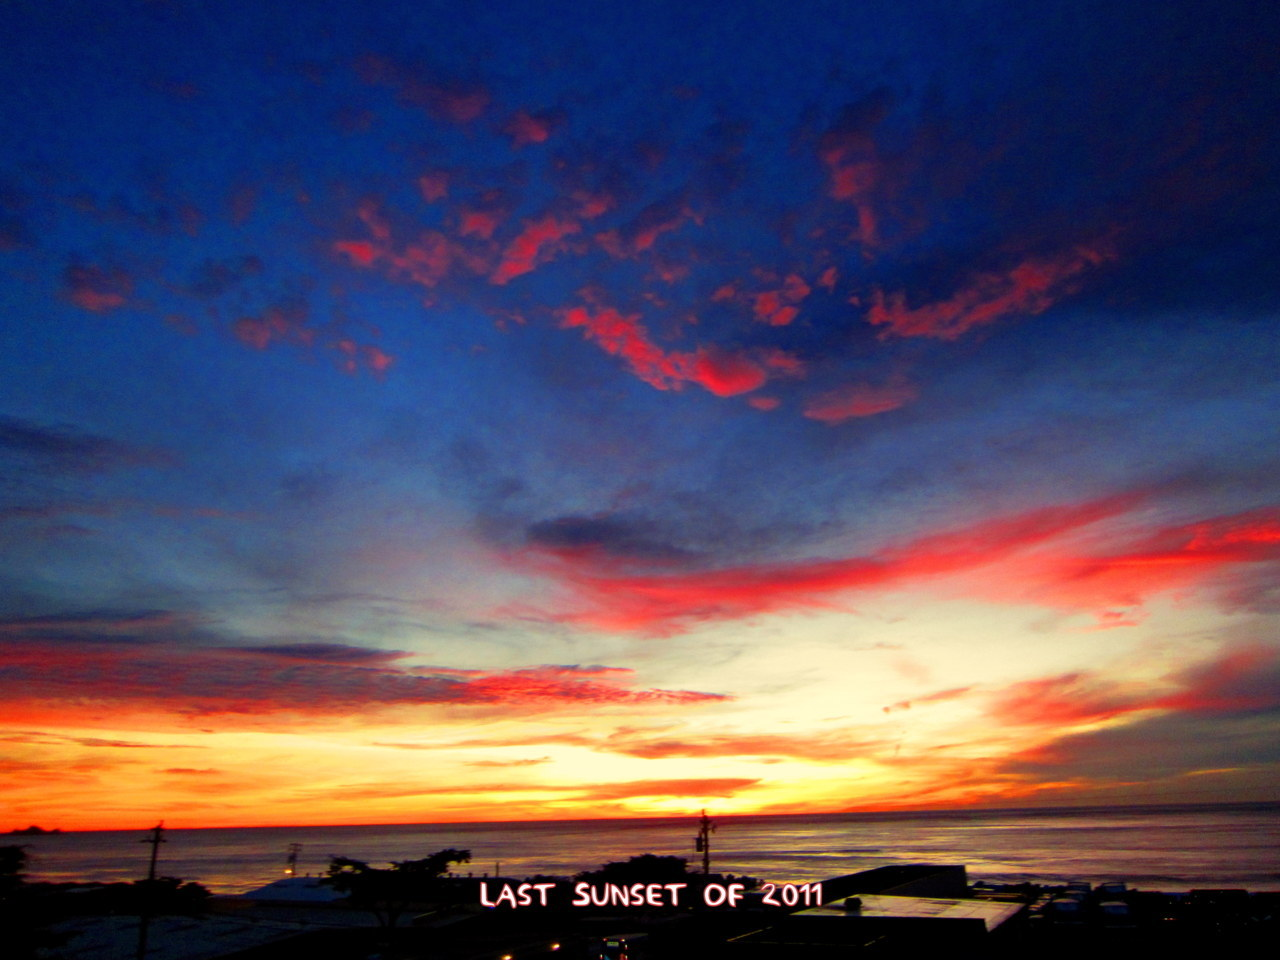 The last sunset of 2011.  For a retrospective of my best sunsets of 2011, click here: http://youtu.be/hc87_VF8JpY?hd=1